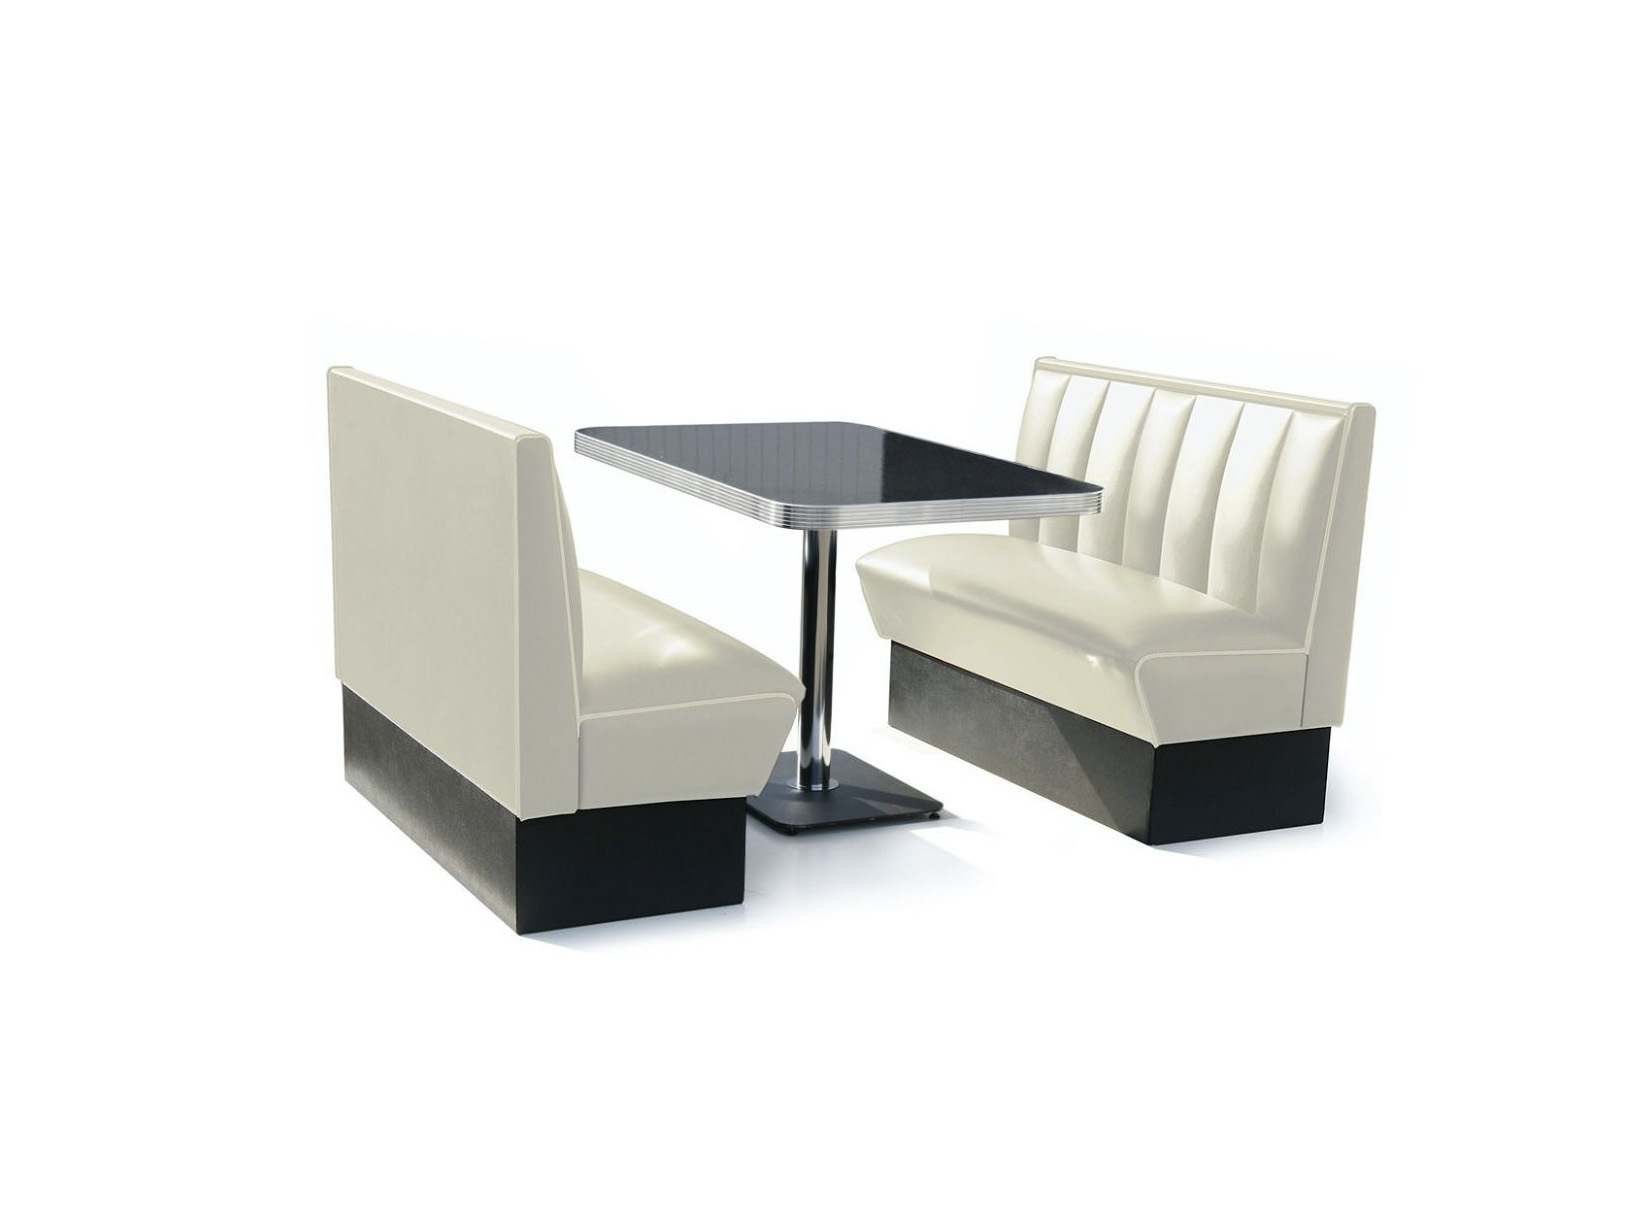 Bel Air Diner Booth Classic Diner 120cm White Kit 2 Pc 1 Table